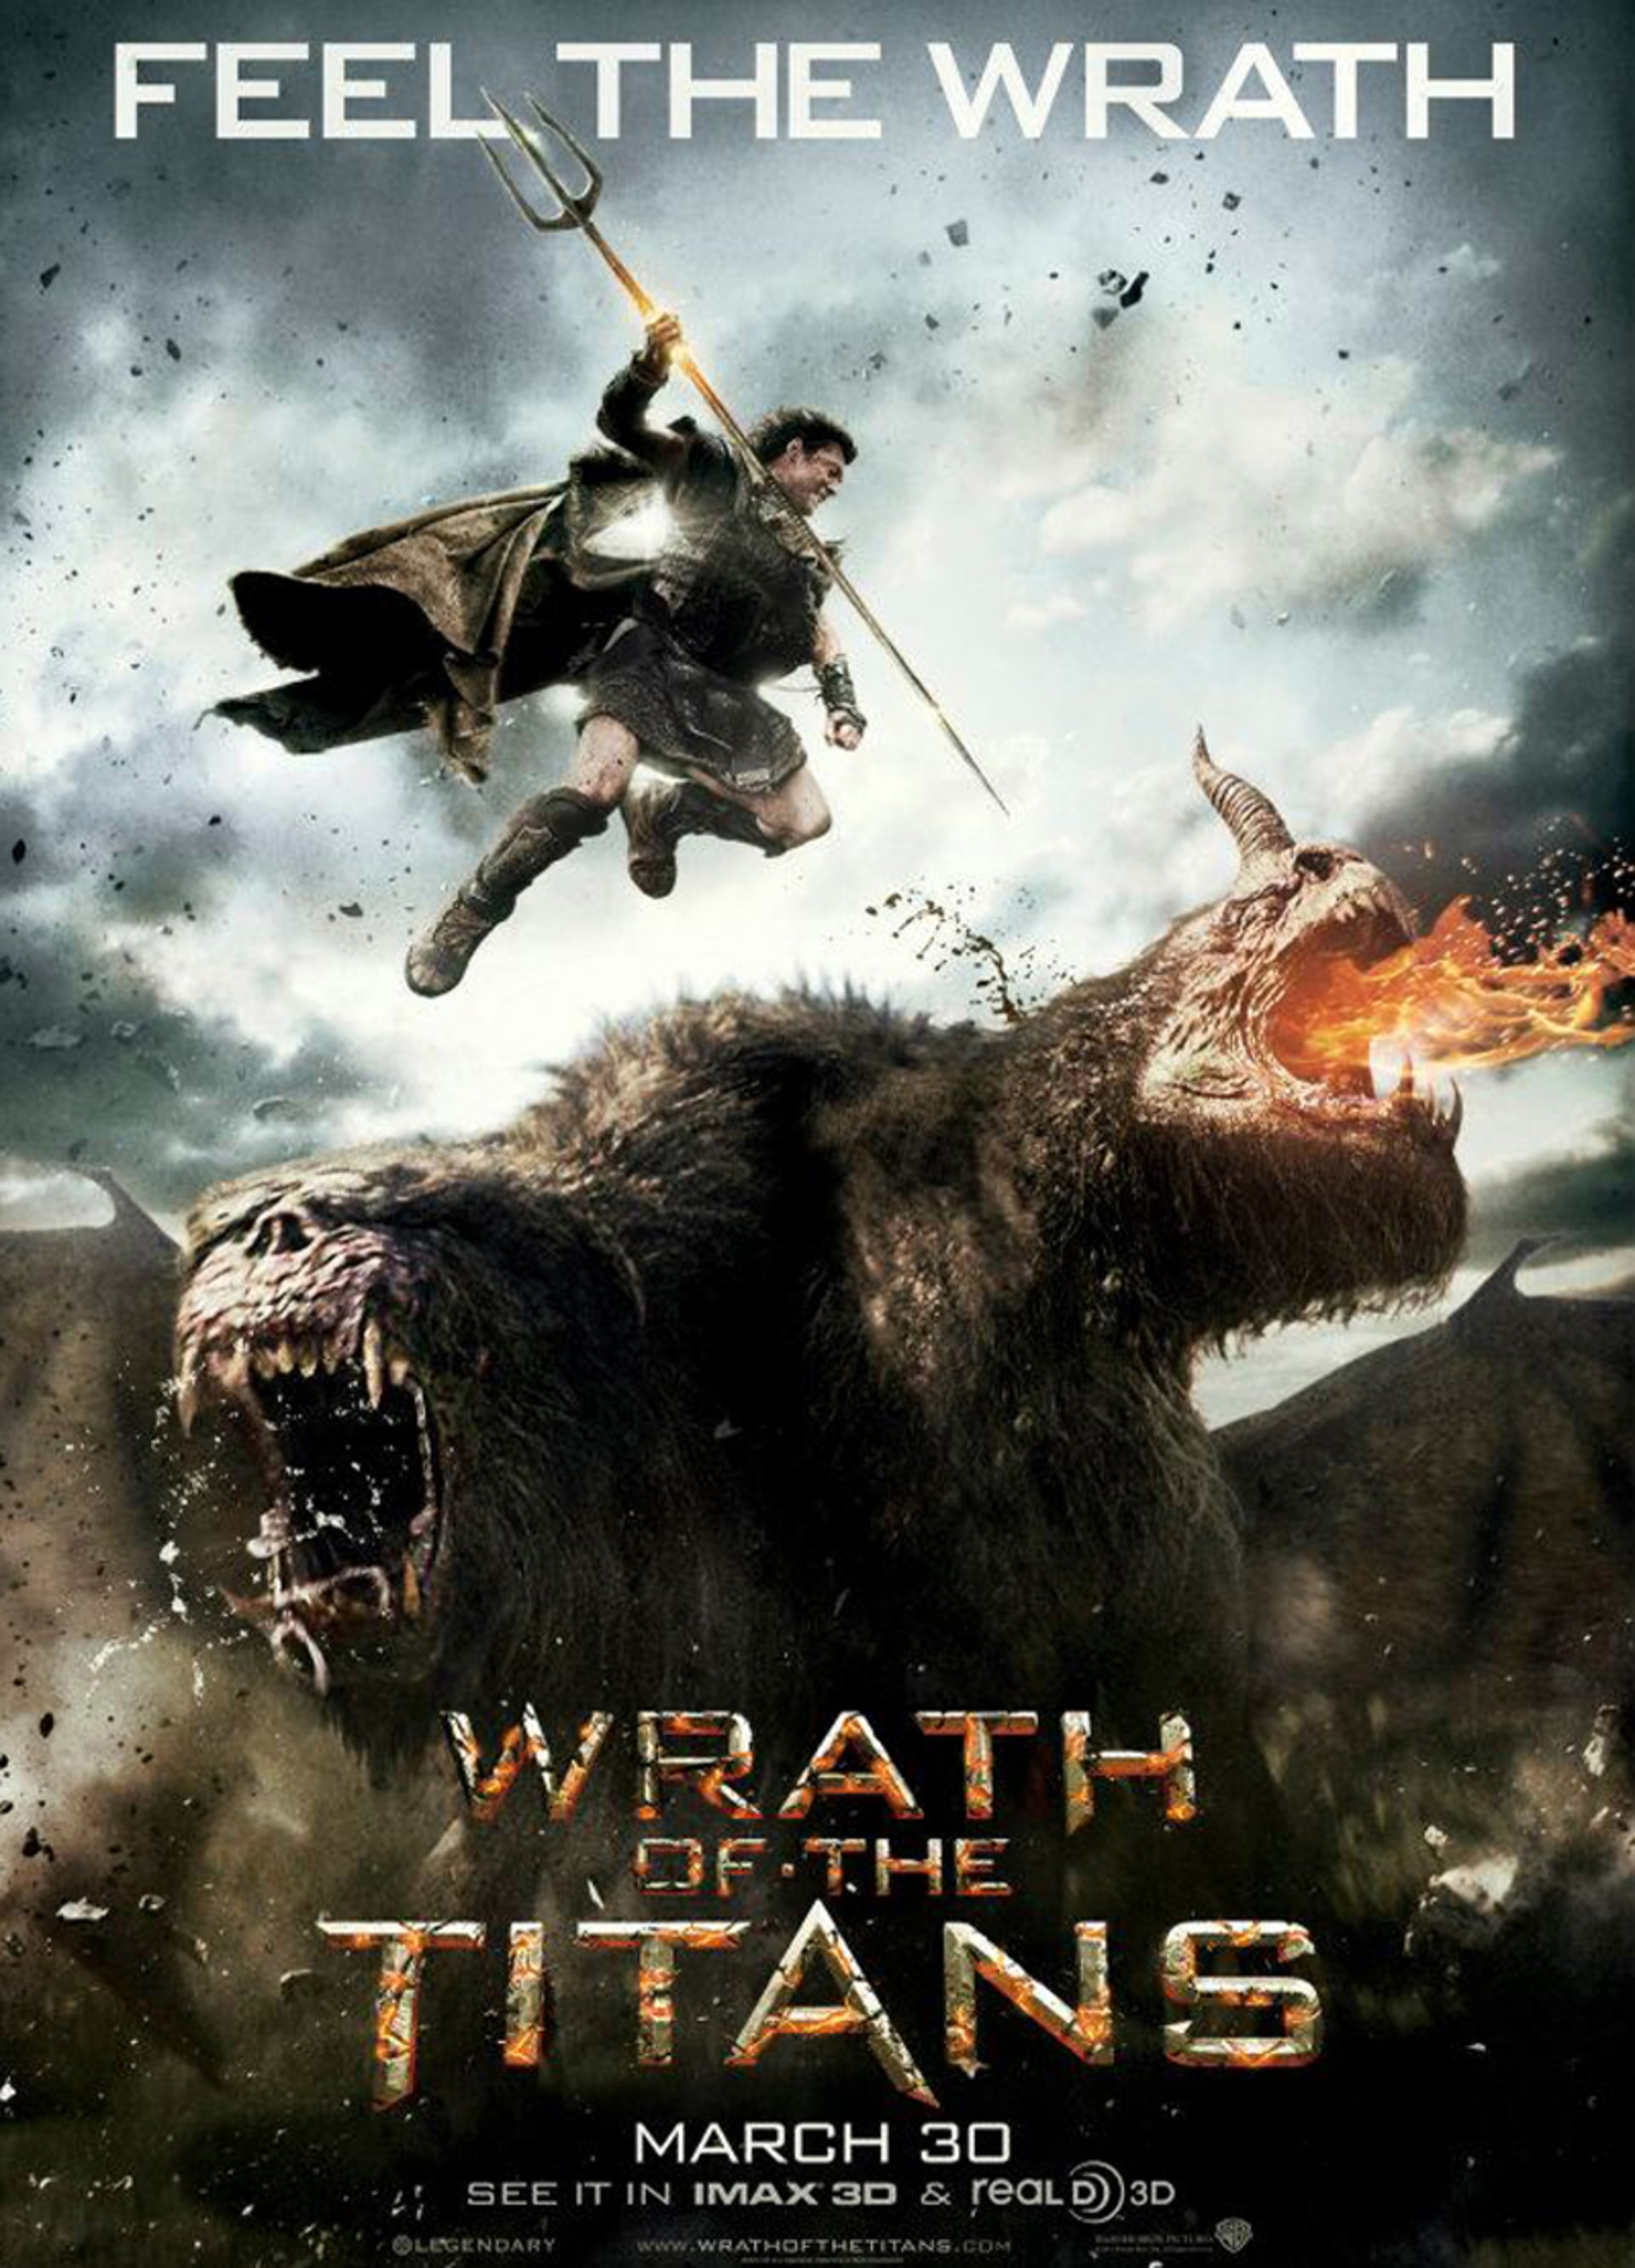 Wrath of the Titans - Poster 1